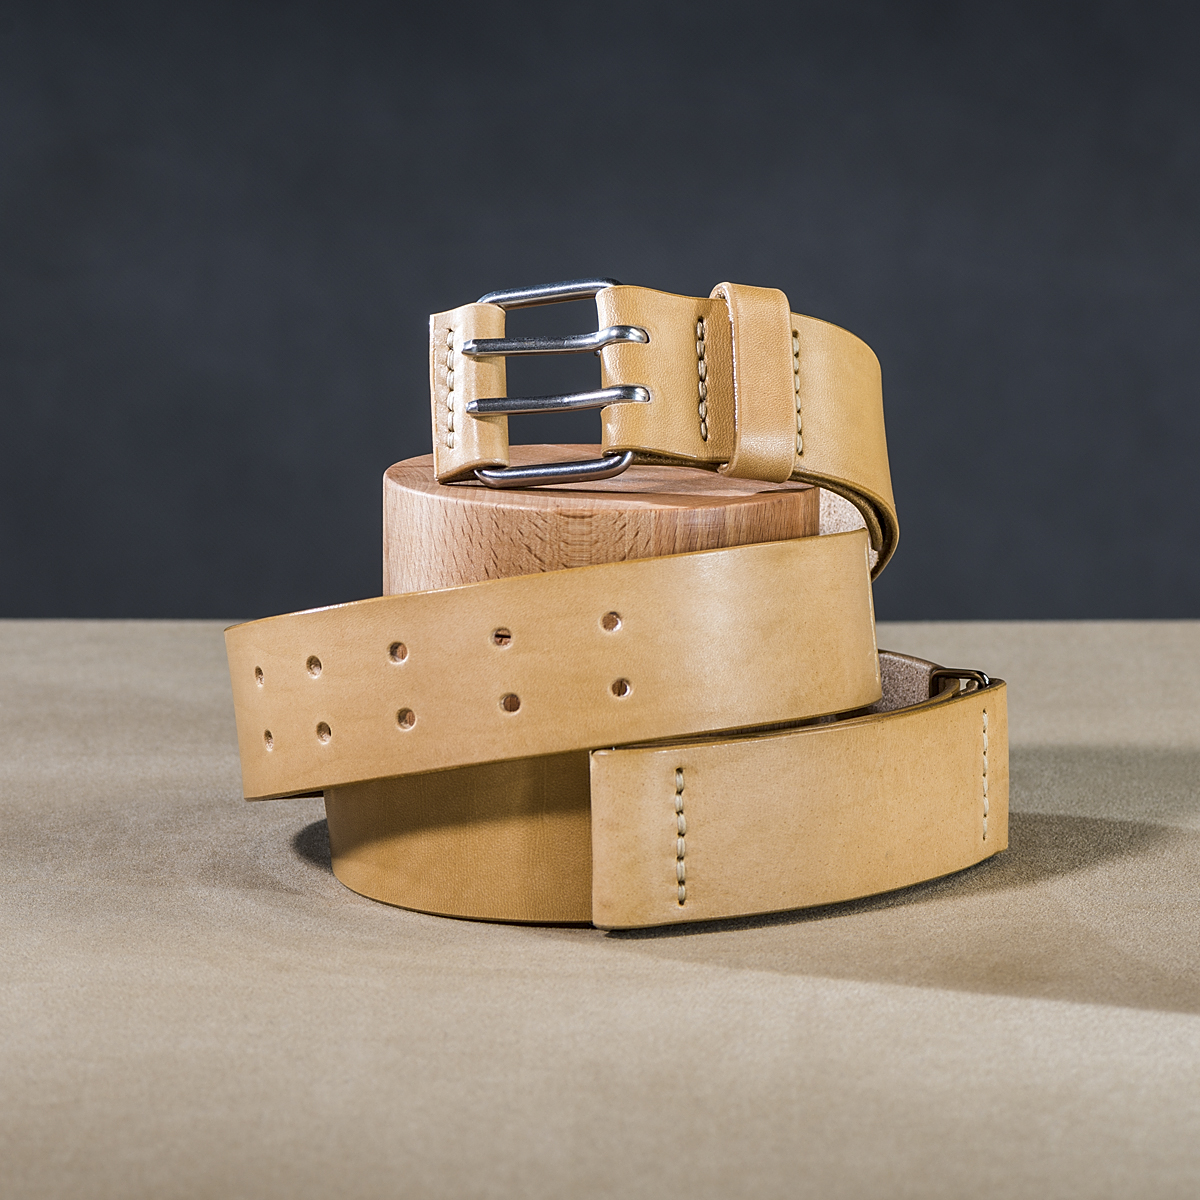 Leather belt for guys Beige 1.